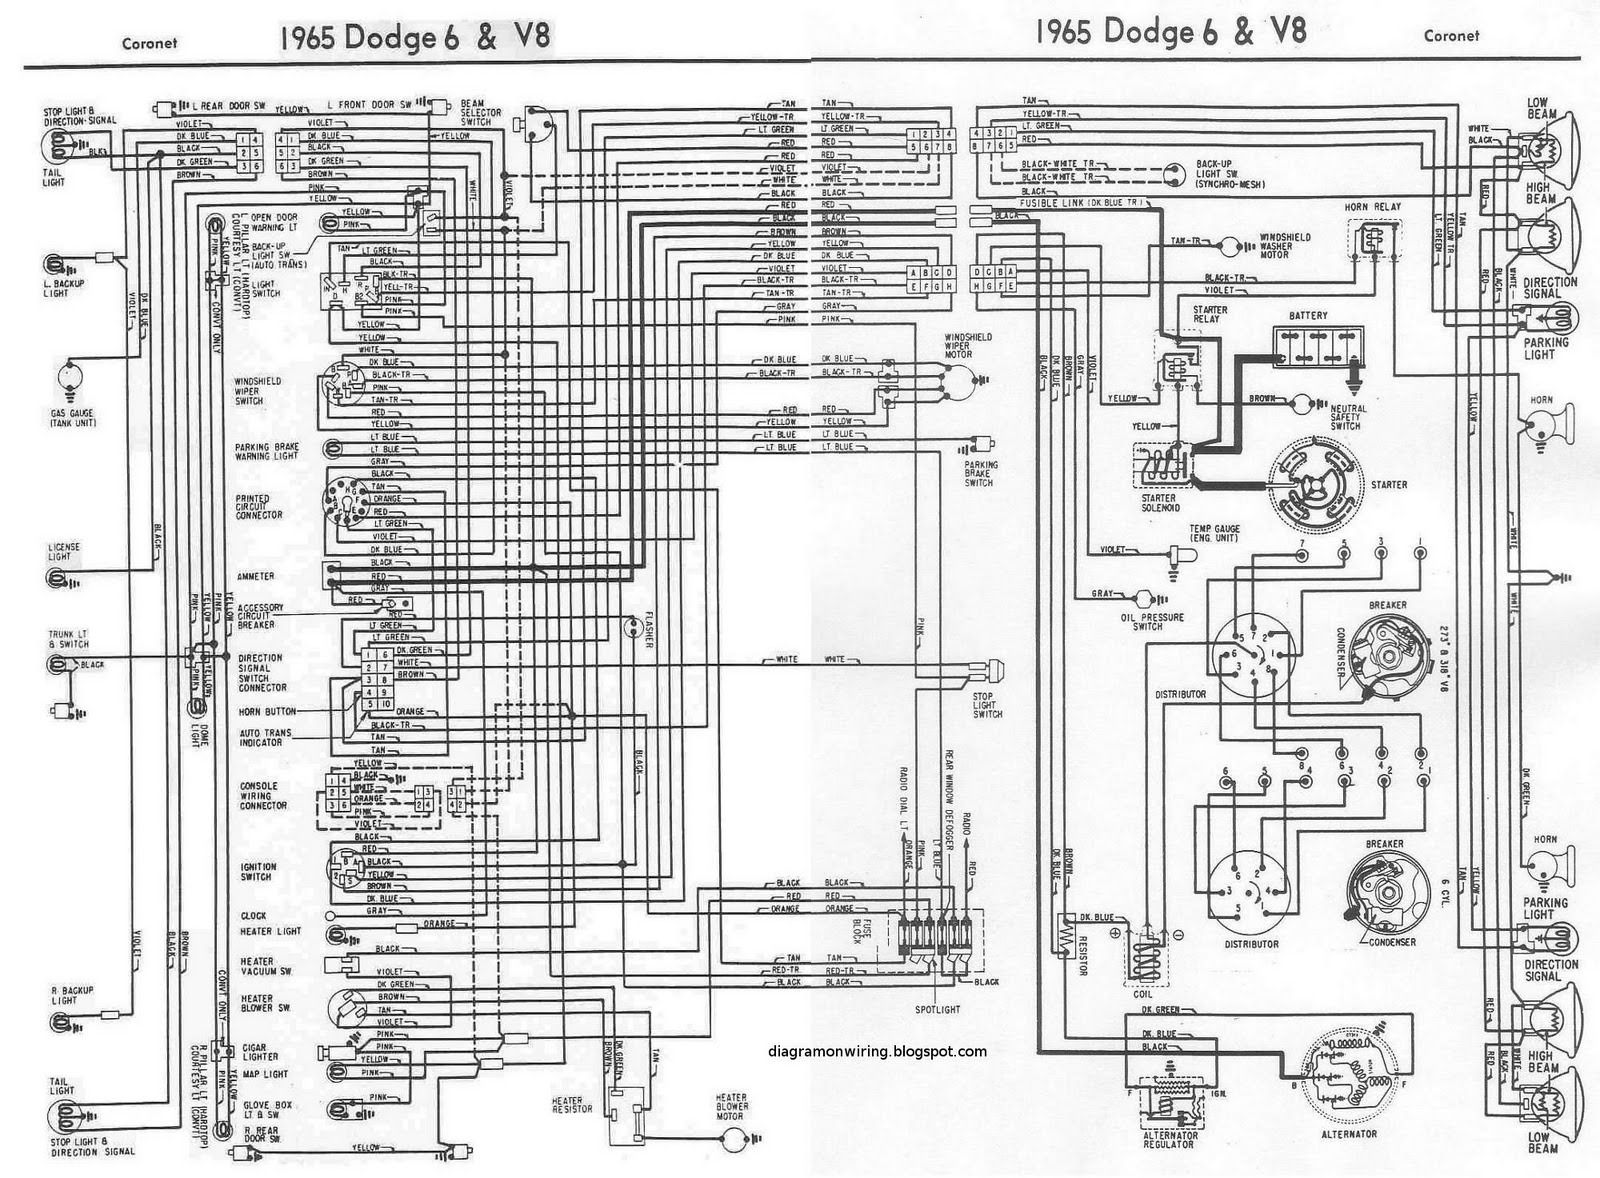 1951 dodge wiring diagram read all wiring diagram Ford Wiring Schematics